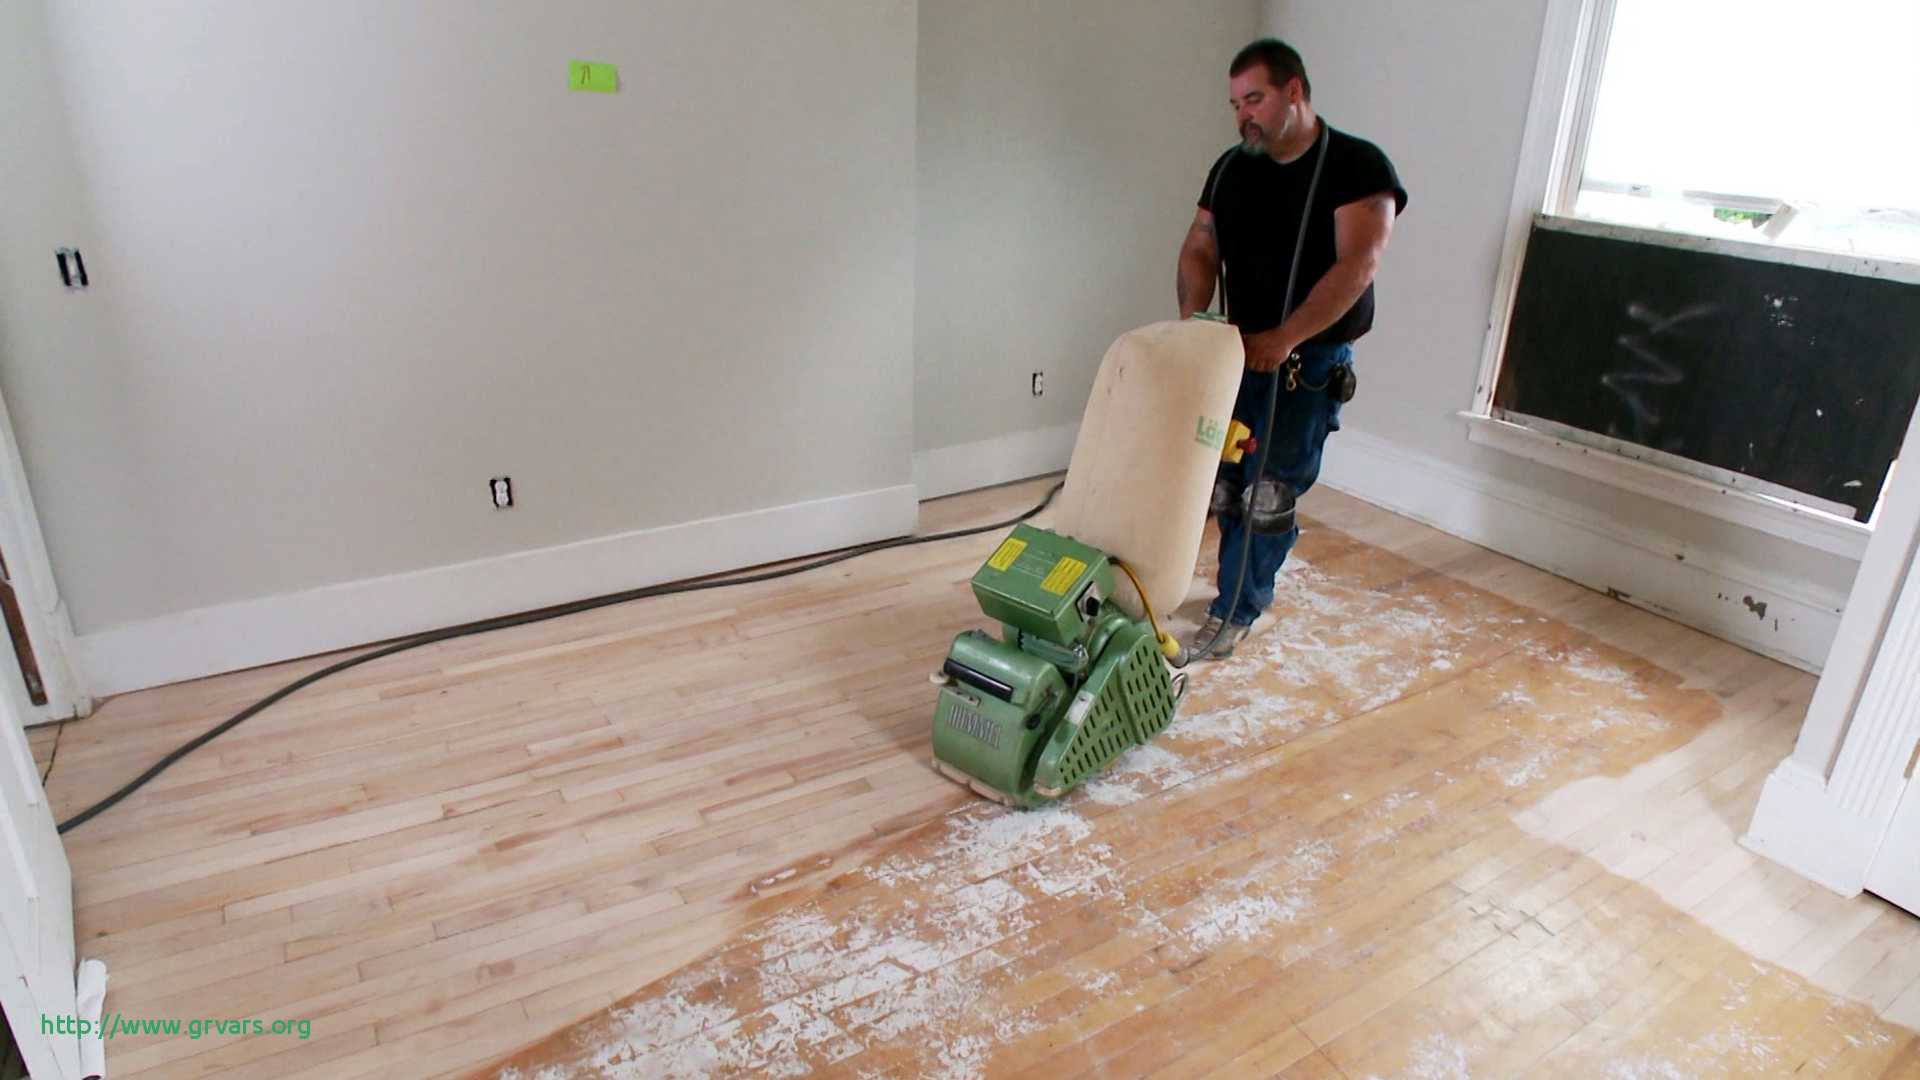 refinishing hardwood floors without sanding opt of how to stain old hardwood floors without sanding wikizie co regarding how to clean old hardwood floors without sanding a‰lagant will